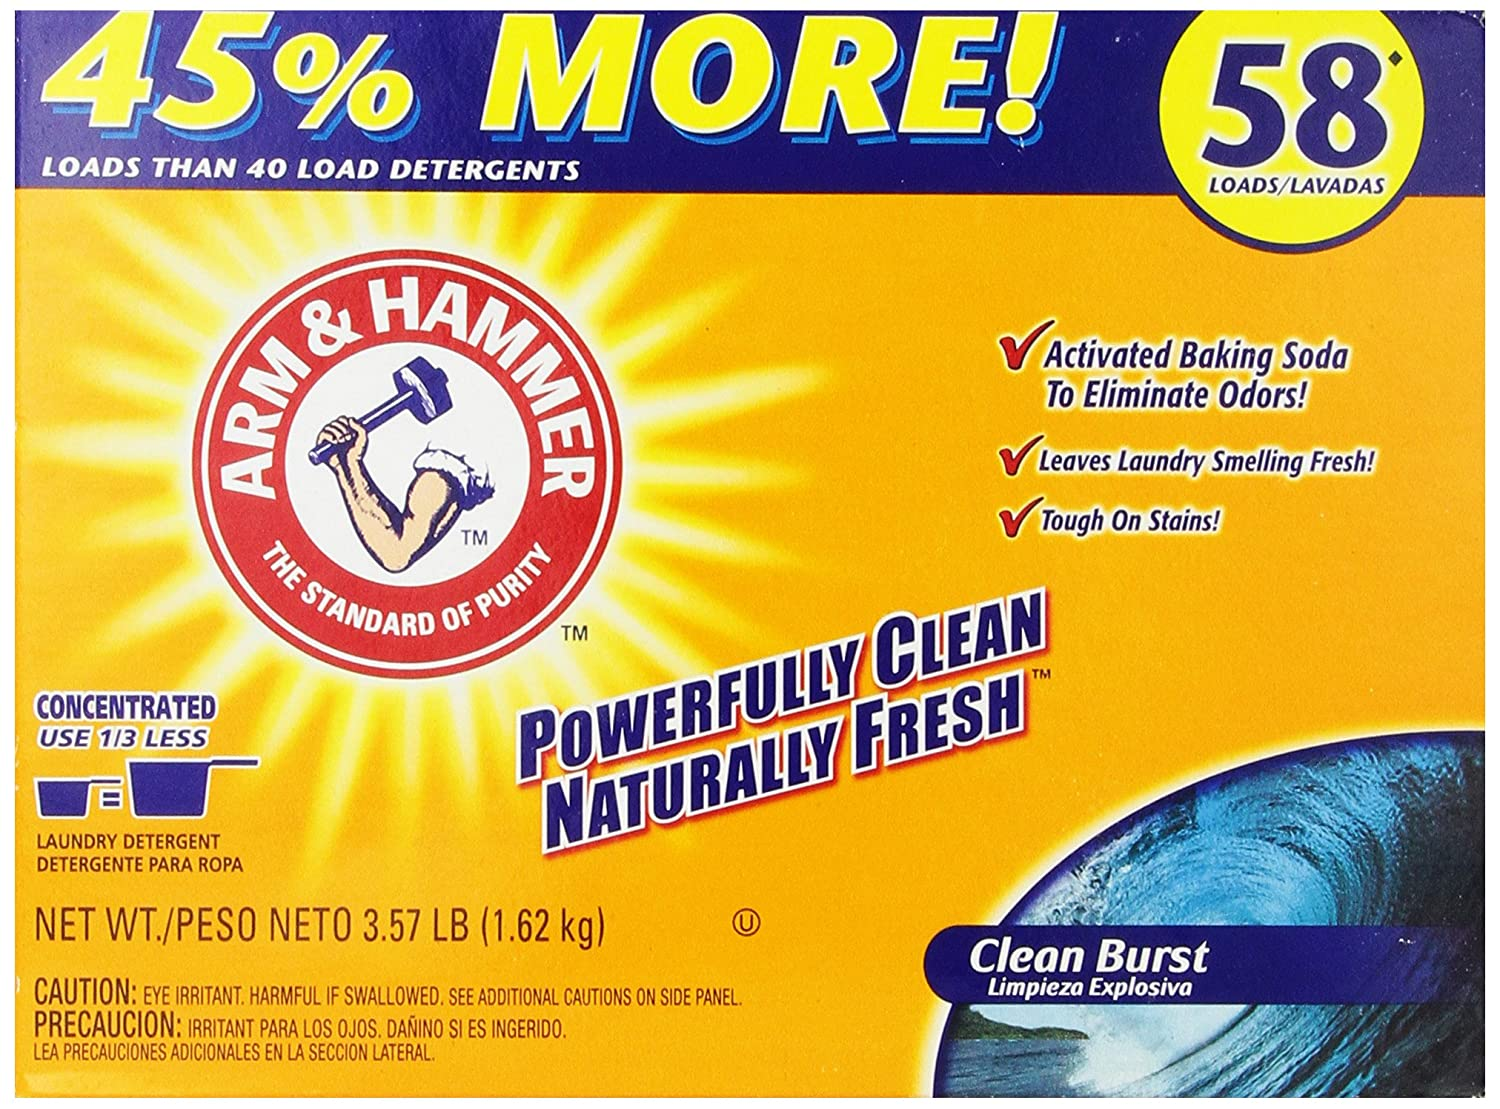 Is arm and hammer powder laundry detergent he - Amazon Com Arm Hammer Laundry Detergent Clean Burst 3 57 Lbs Health Personal Care